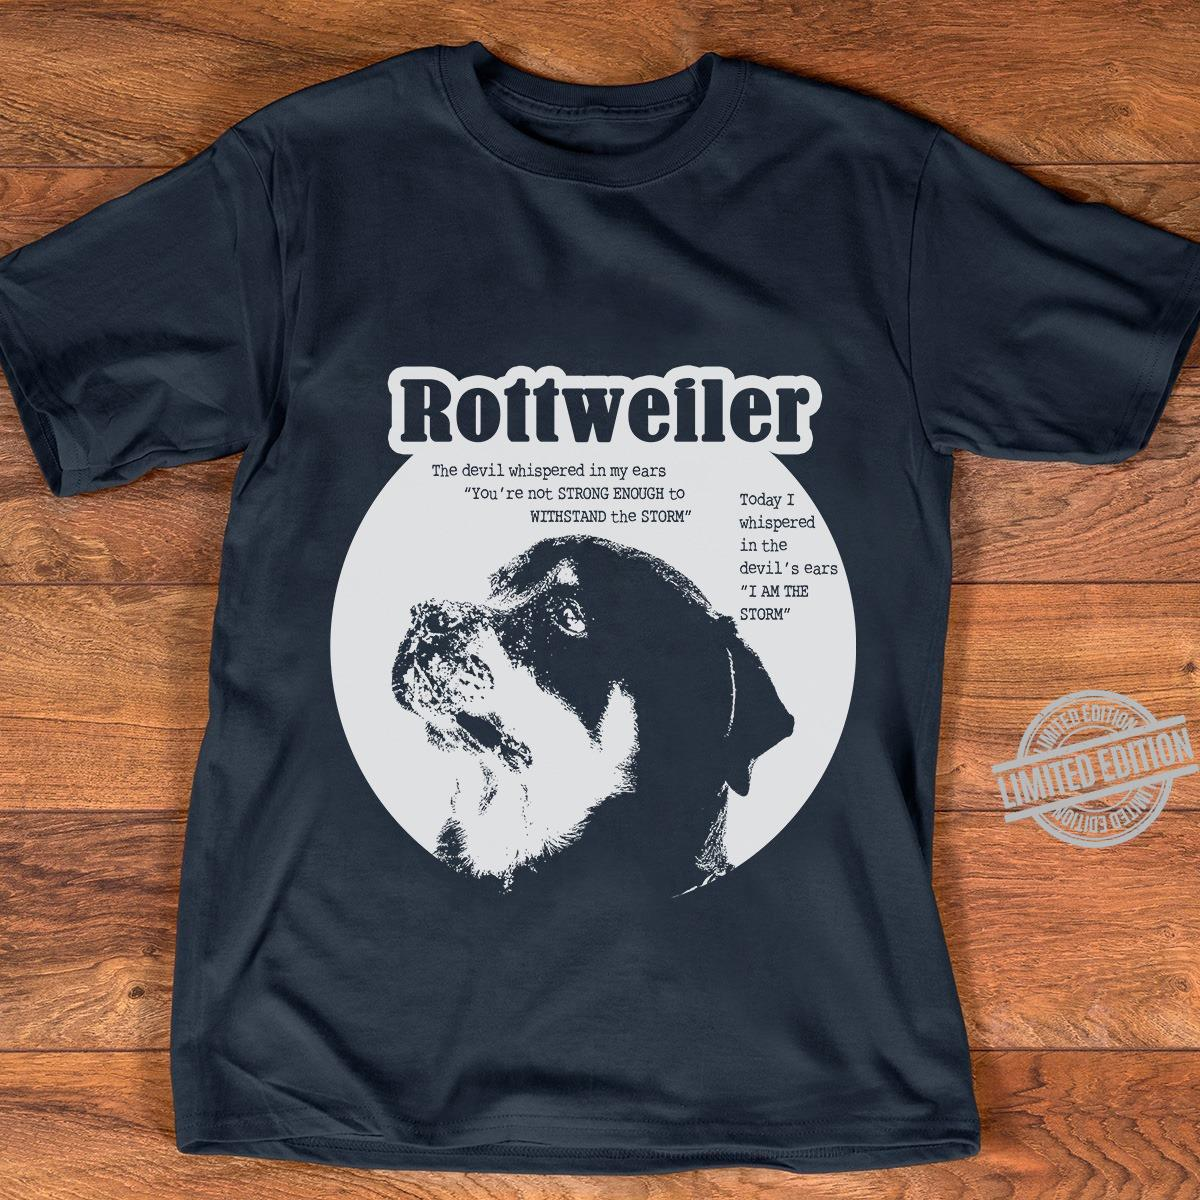 Rottweiler The Devil I Whispered In My Earss You're Not Strong Enough To Withstand The Storm Today I Whispered In The Devil's Ears I Am The Storm Shirt